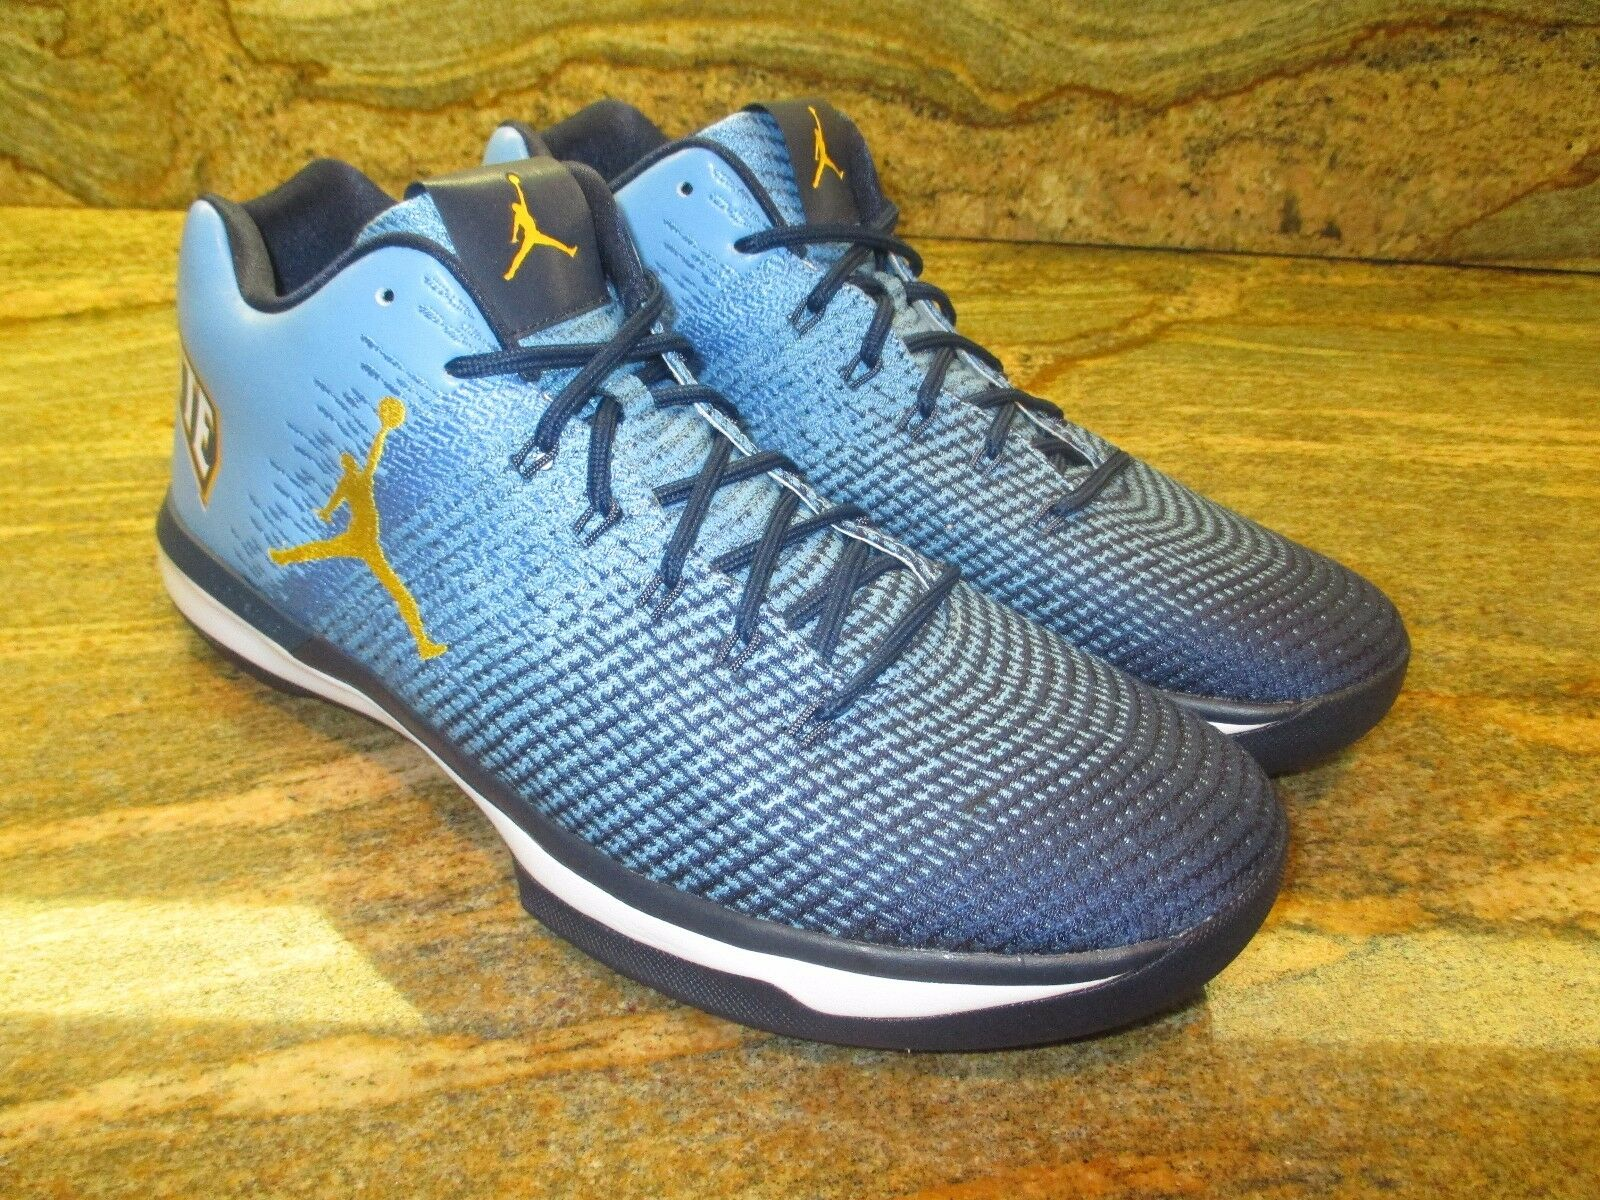 Unreleased Nike Air Jordan XXX1 Low Promo Sample SZ 14 Marquette PE golden Eagle